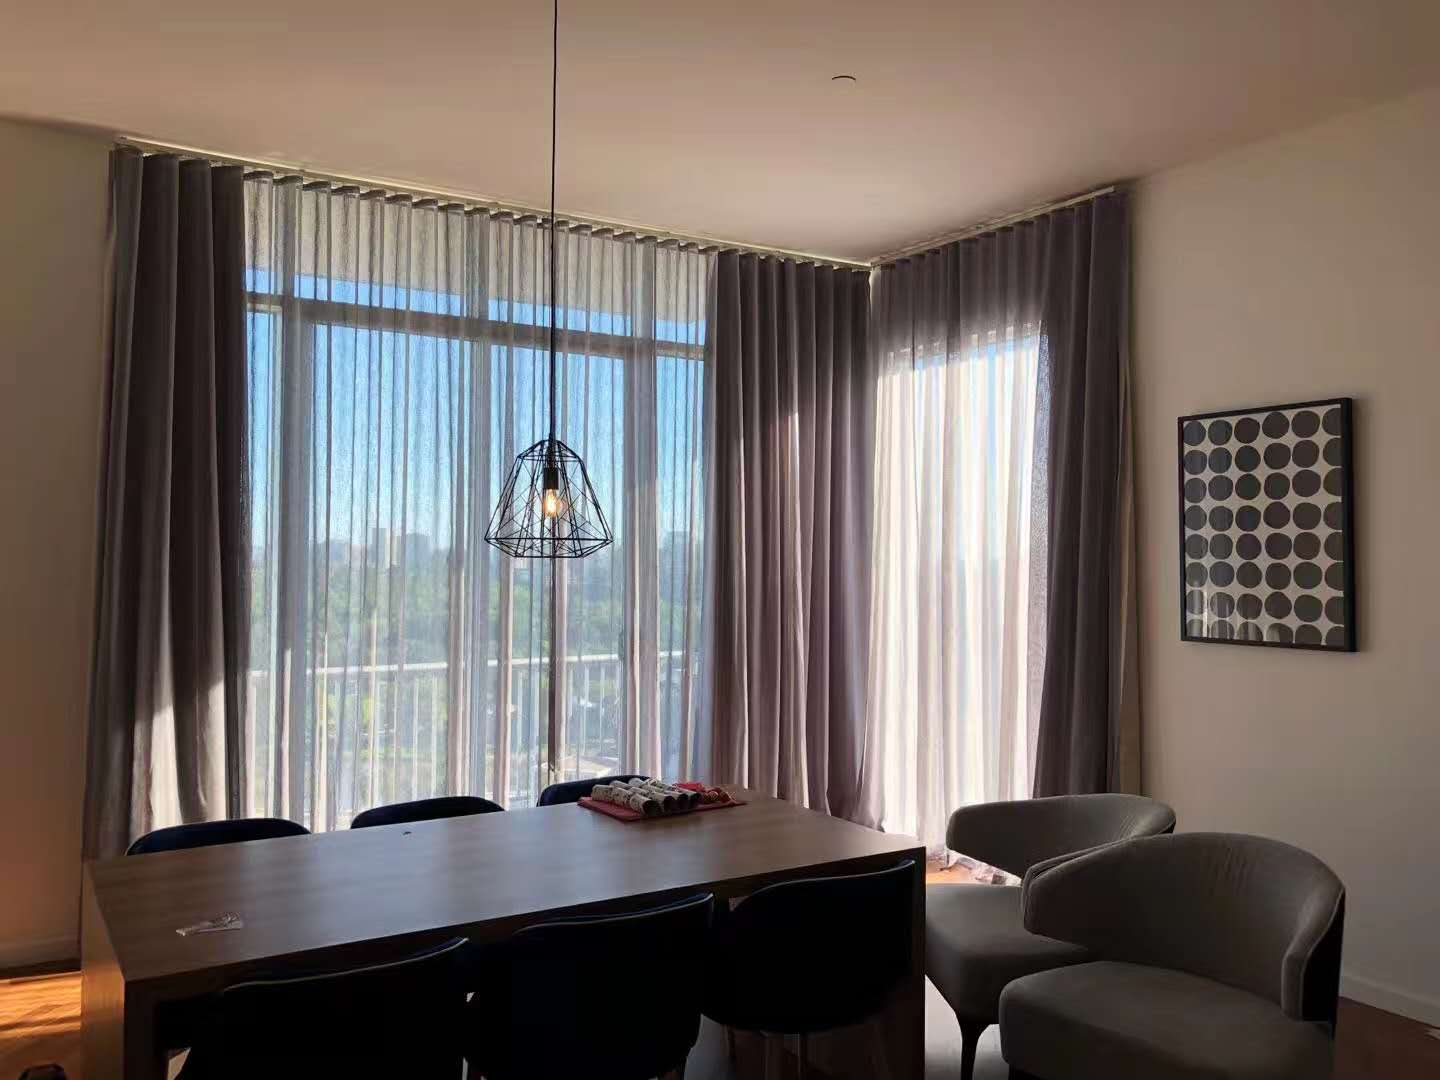 Snake Type Curtain And Drapery Sheer Window Curtains Double Layers Curtains For Window Decoration View Curtains And Drapes Yh Product Details From Guangzhou Yuhong Curtain Materials Co Ltd On Alibaba Com